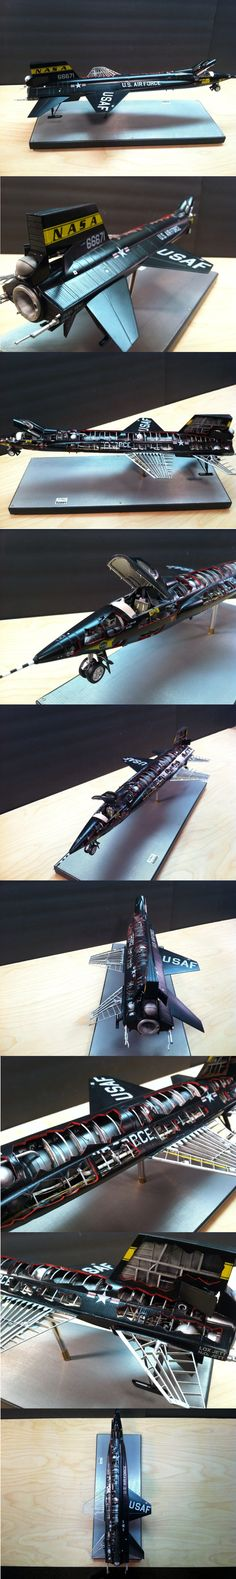 Awesome model of X-15. Unknown artist.  Makes me nostalgic for the early US space program.